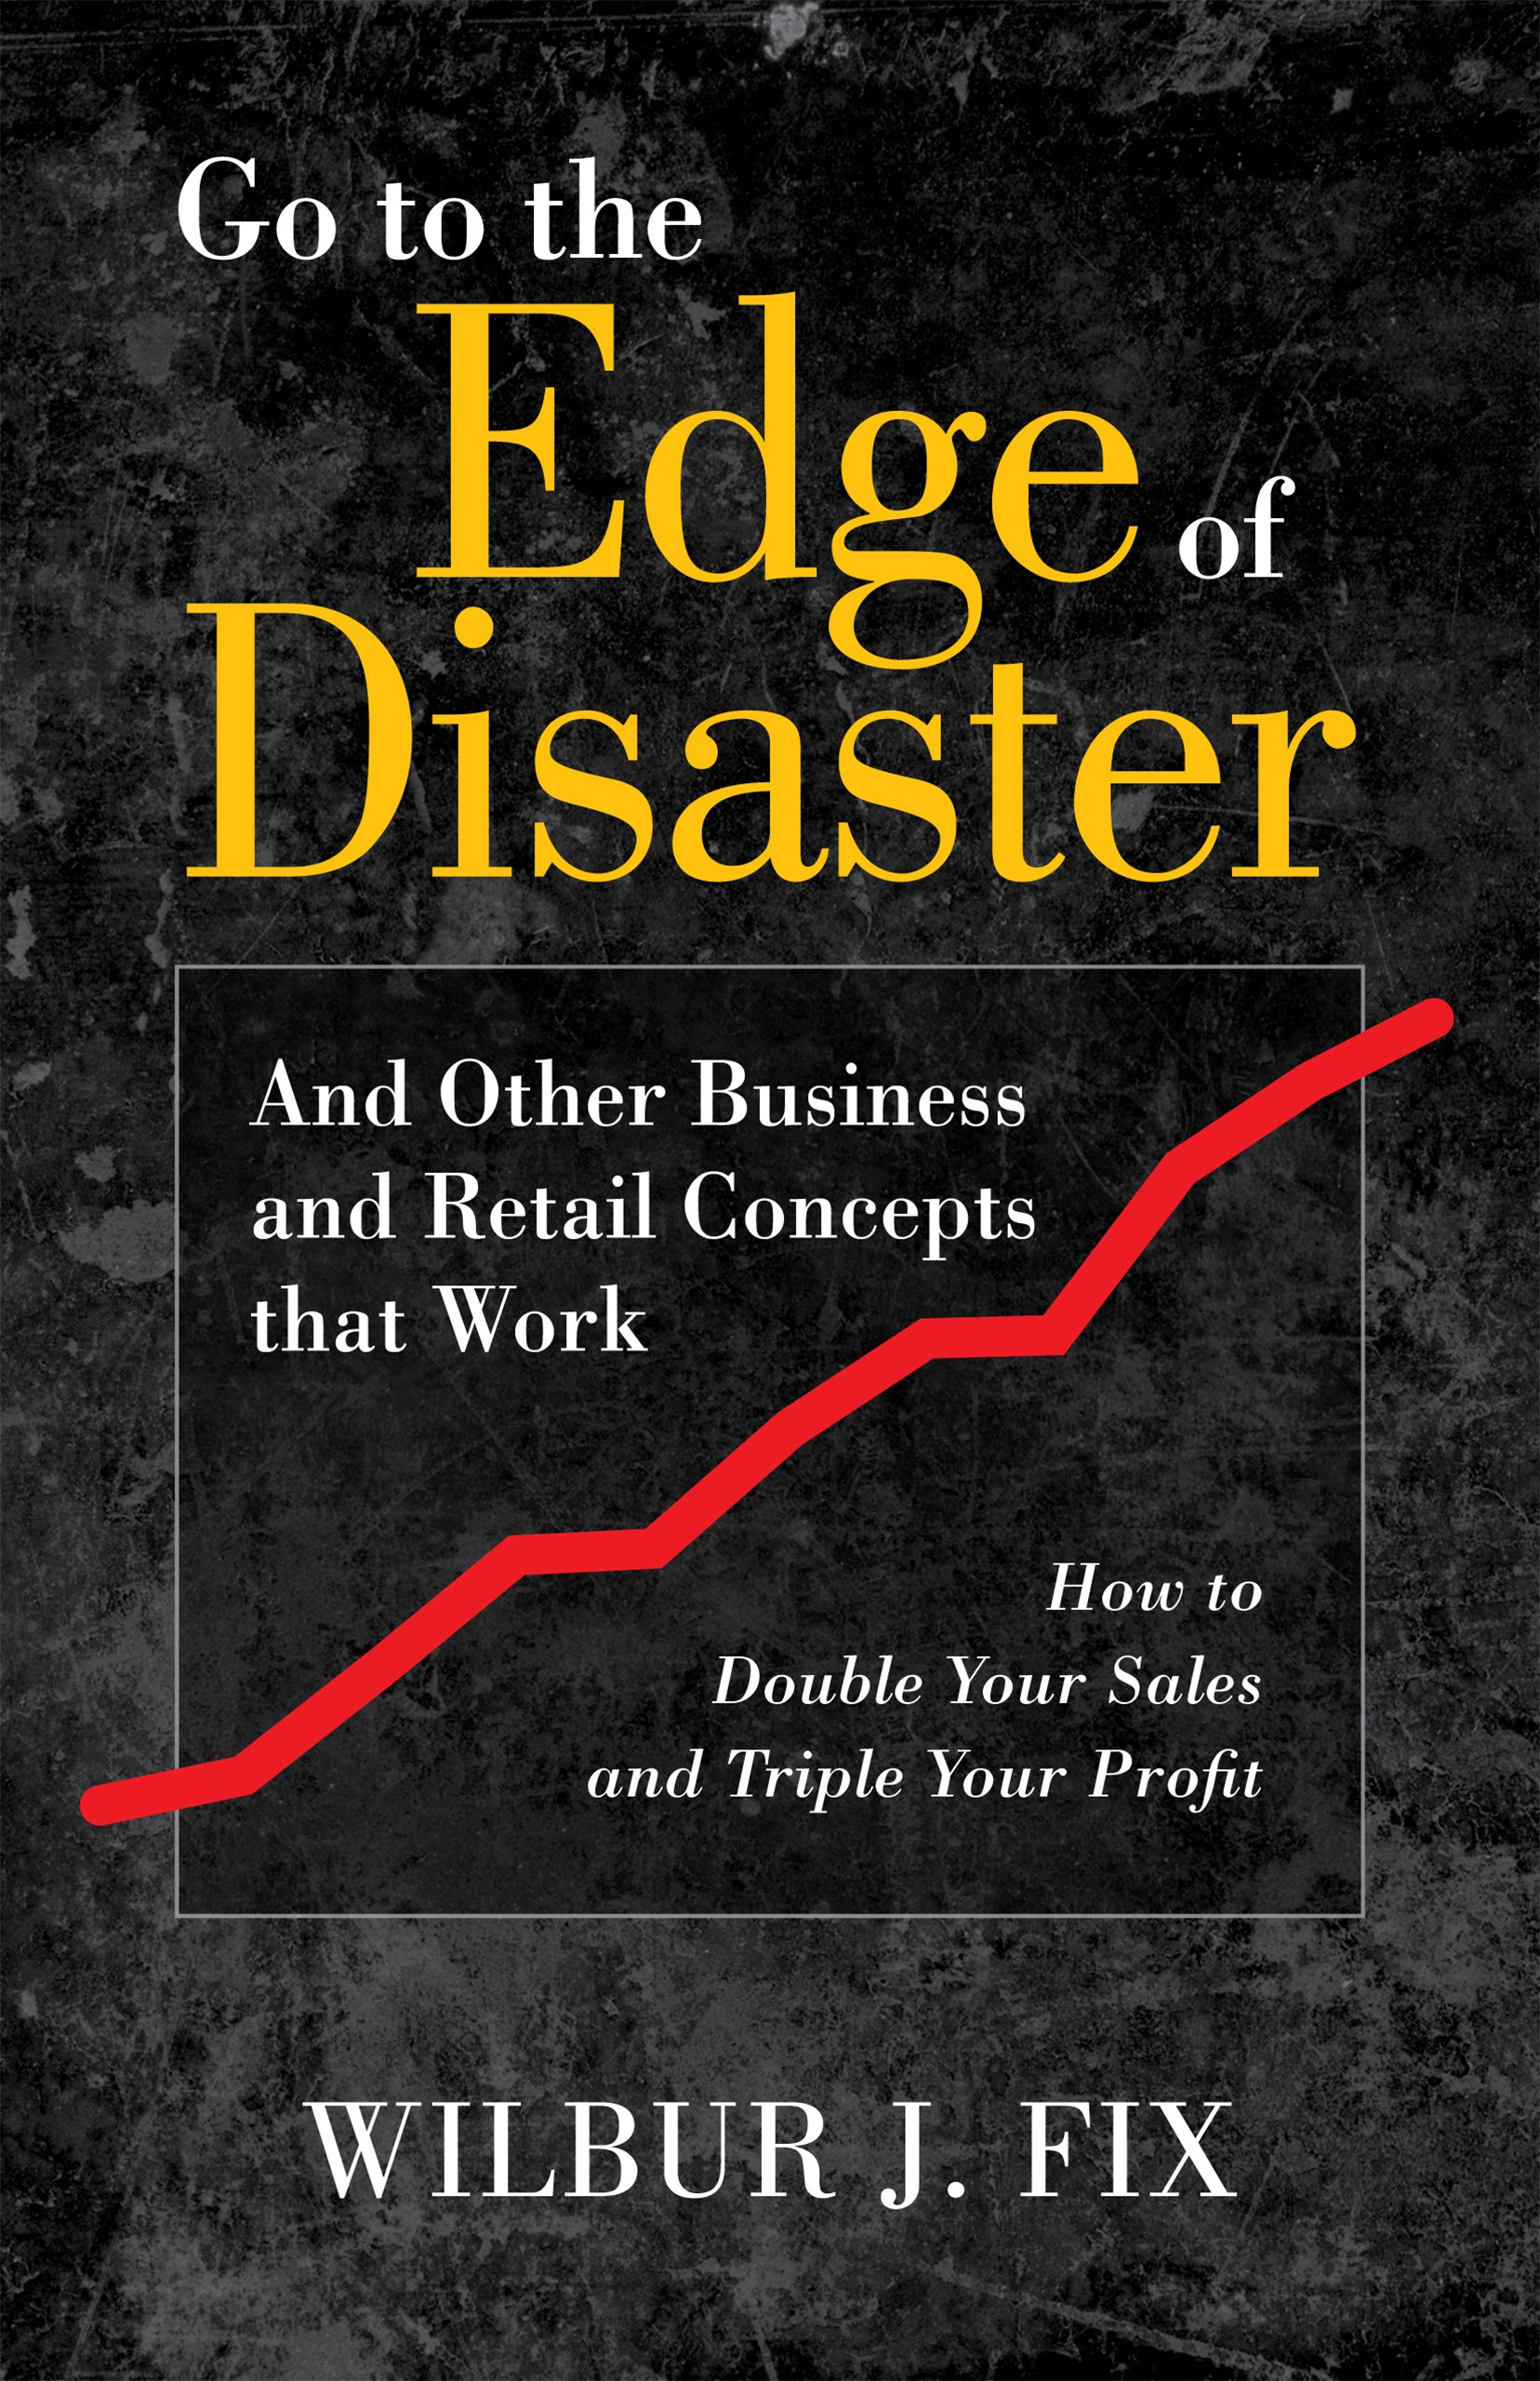 Go to the Edge of Disaster and Other Business and Retail Concepts that Work ebook